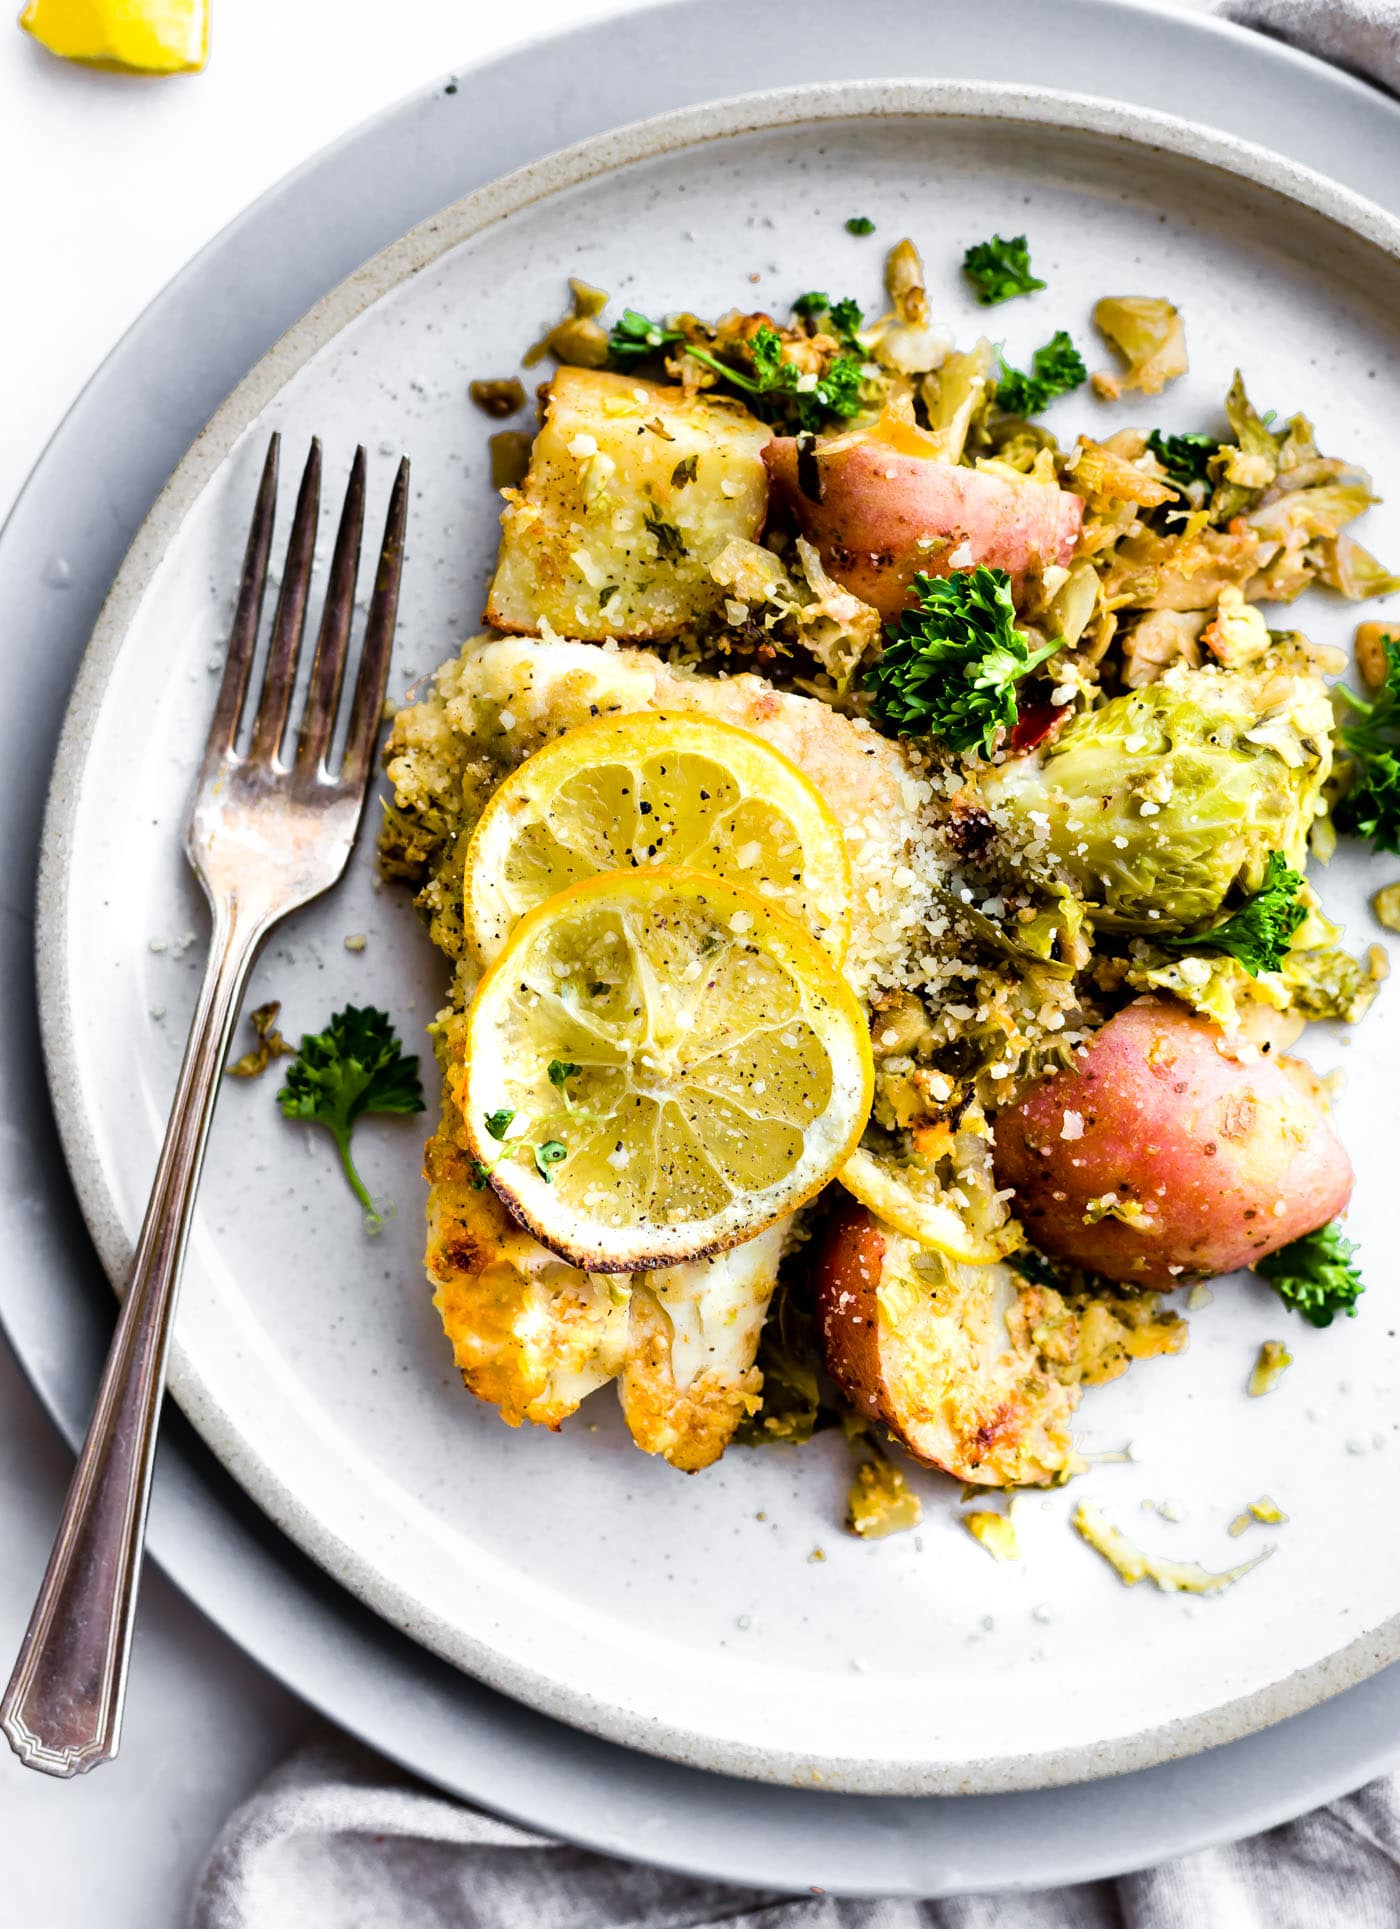 Honey mustard baked fish and vegetables one pan meal for Fish with vegetables